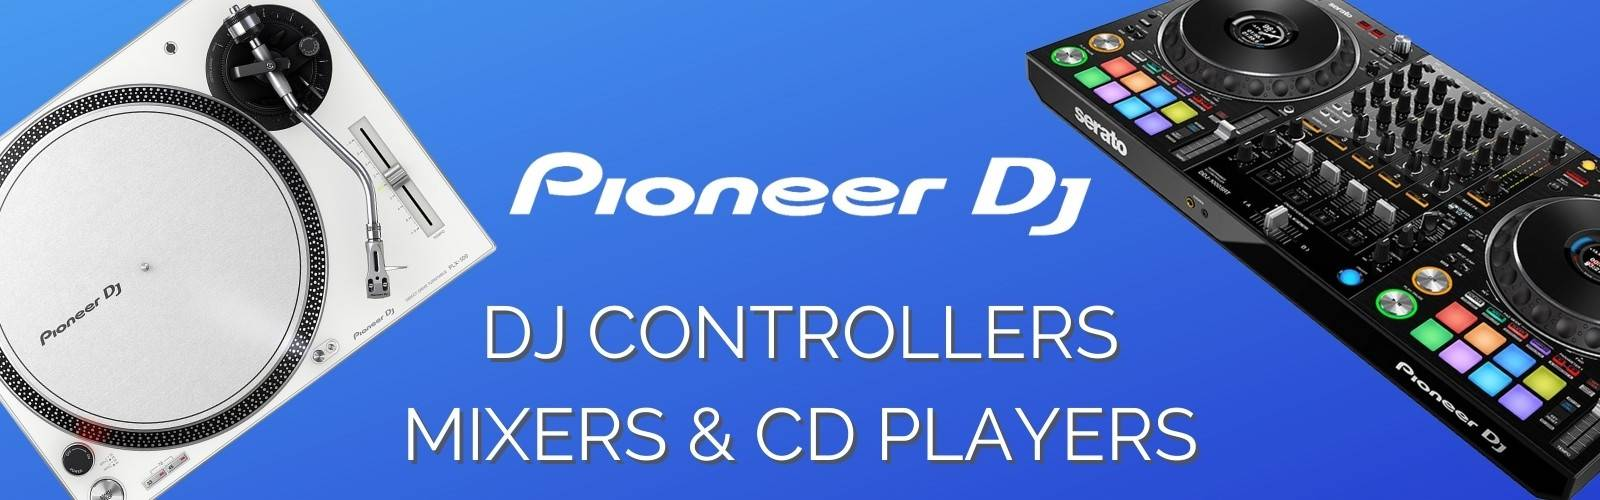 dj controllers mixers cd players for sale emi audio